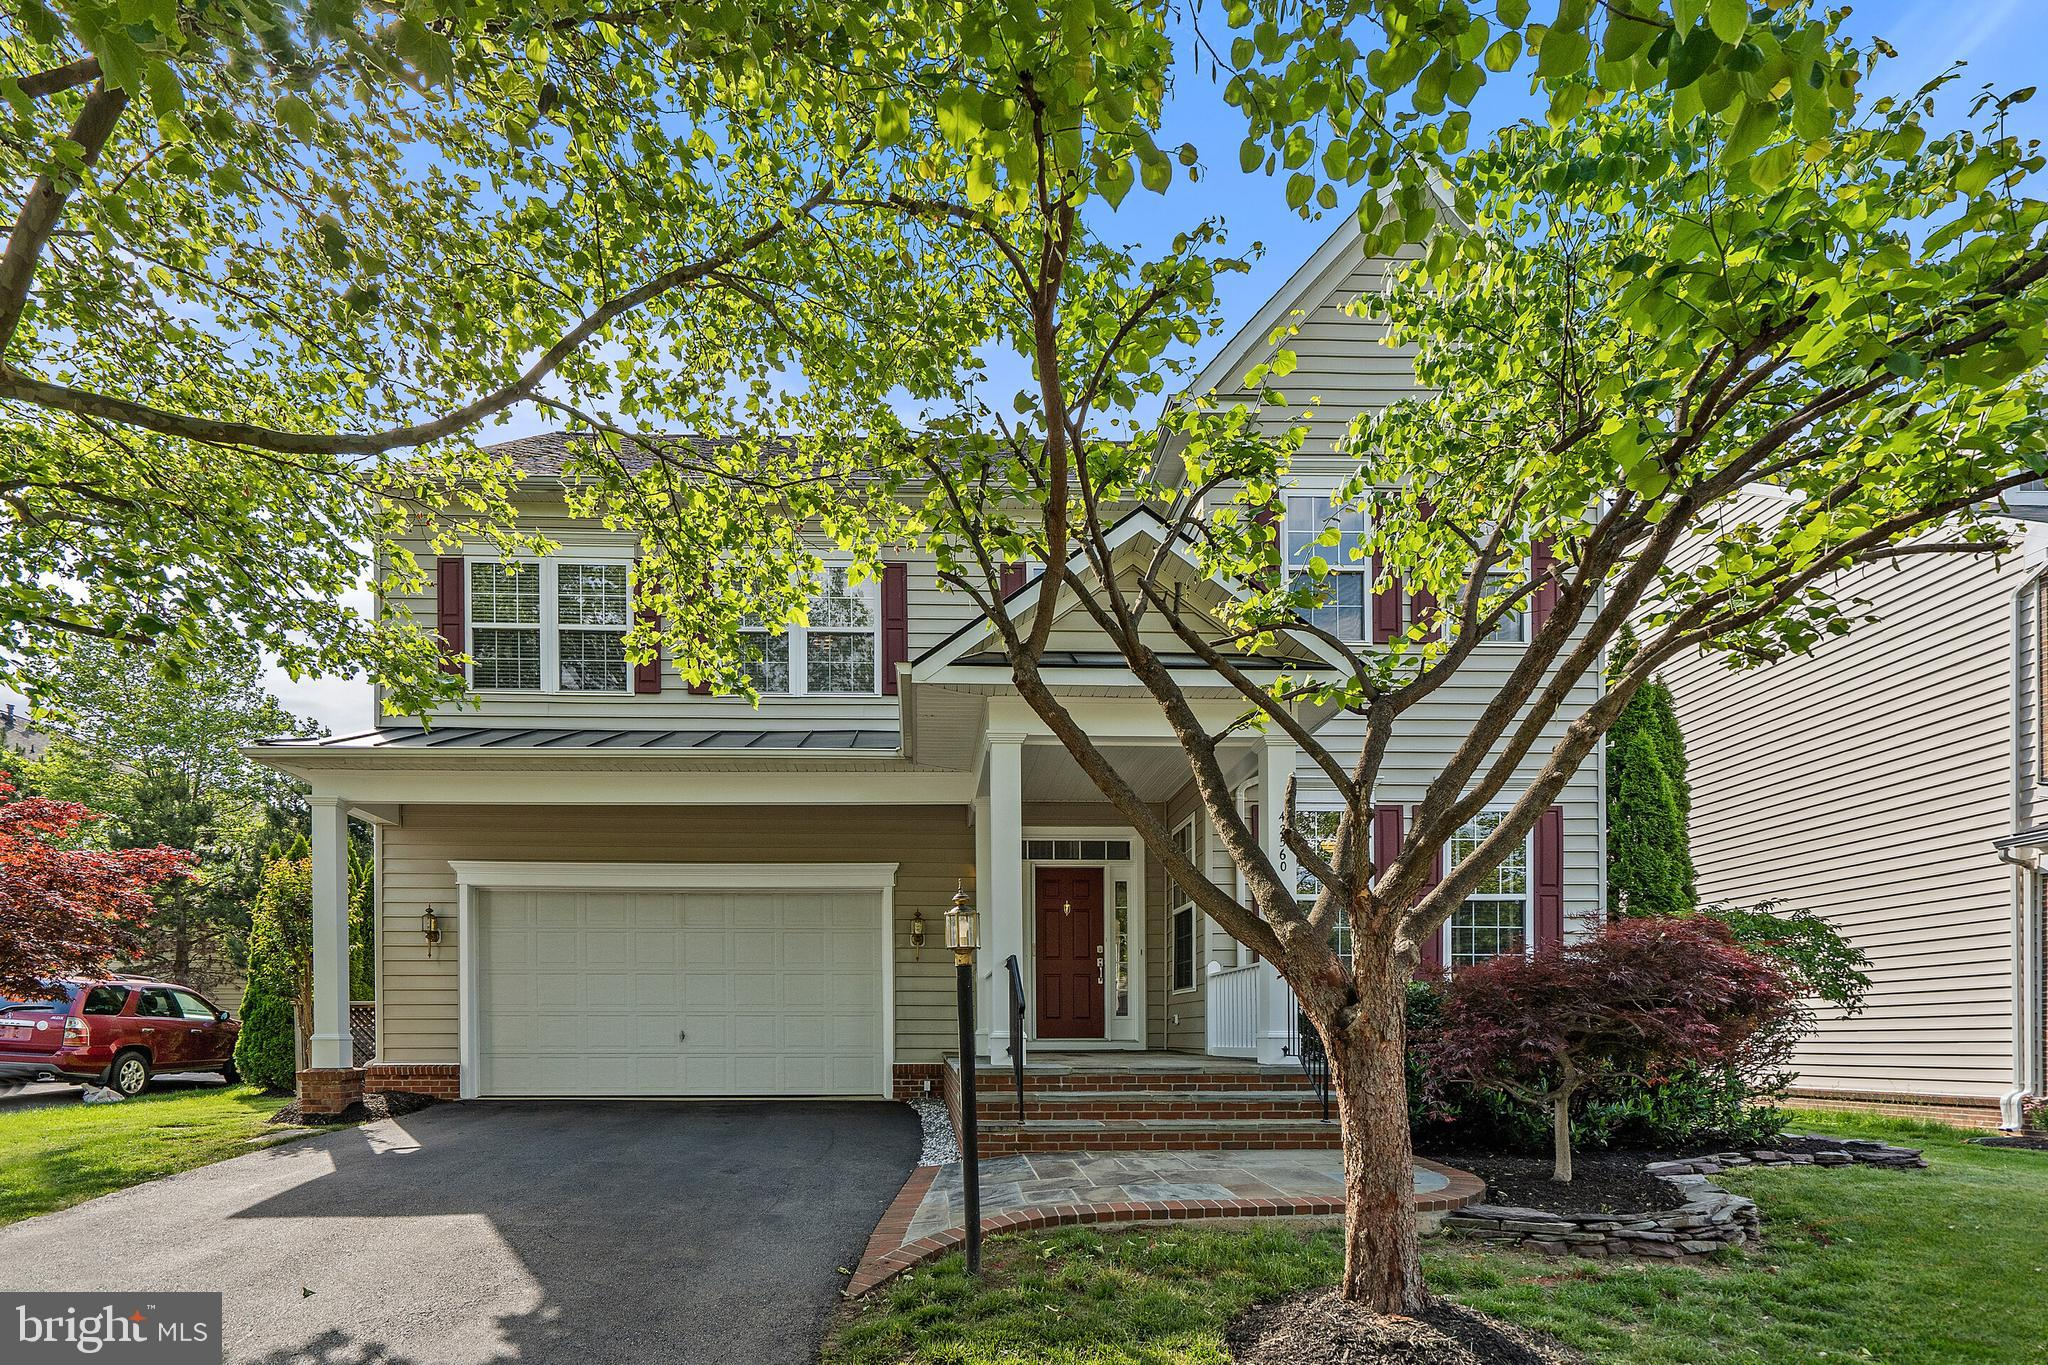 Beautiful 4 Bedroom, 3.5 Bath Colonial in Brambleton! Brand New Roof! Lovely updated kitchen with Qu